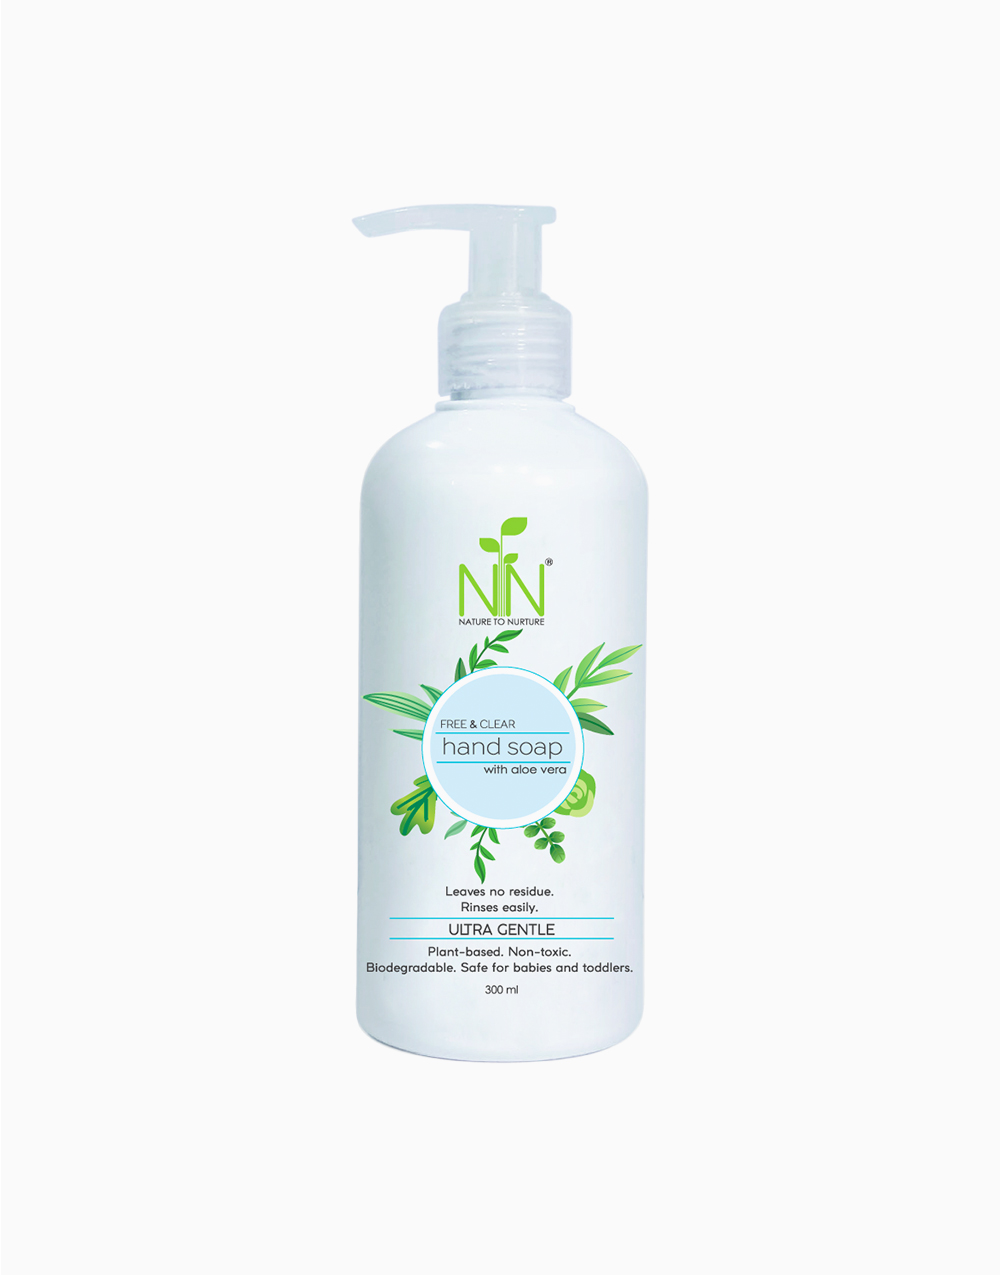 Hand Soap With Aloe Vera by Nature to Nurture | Fragrance-Free